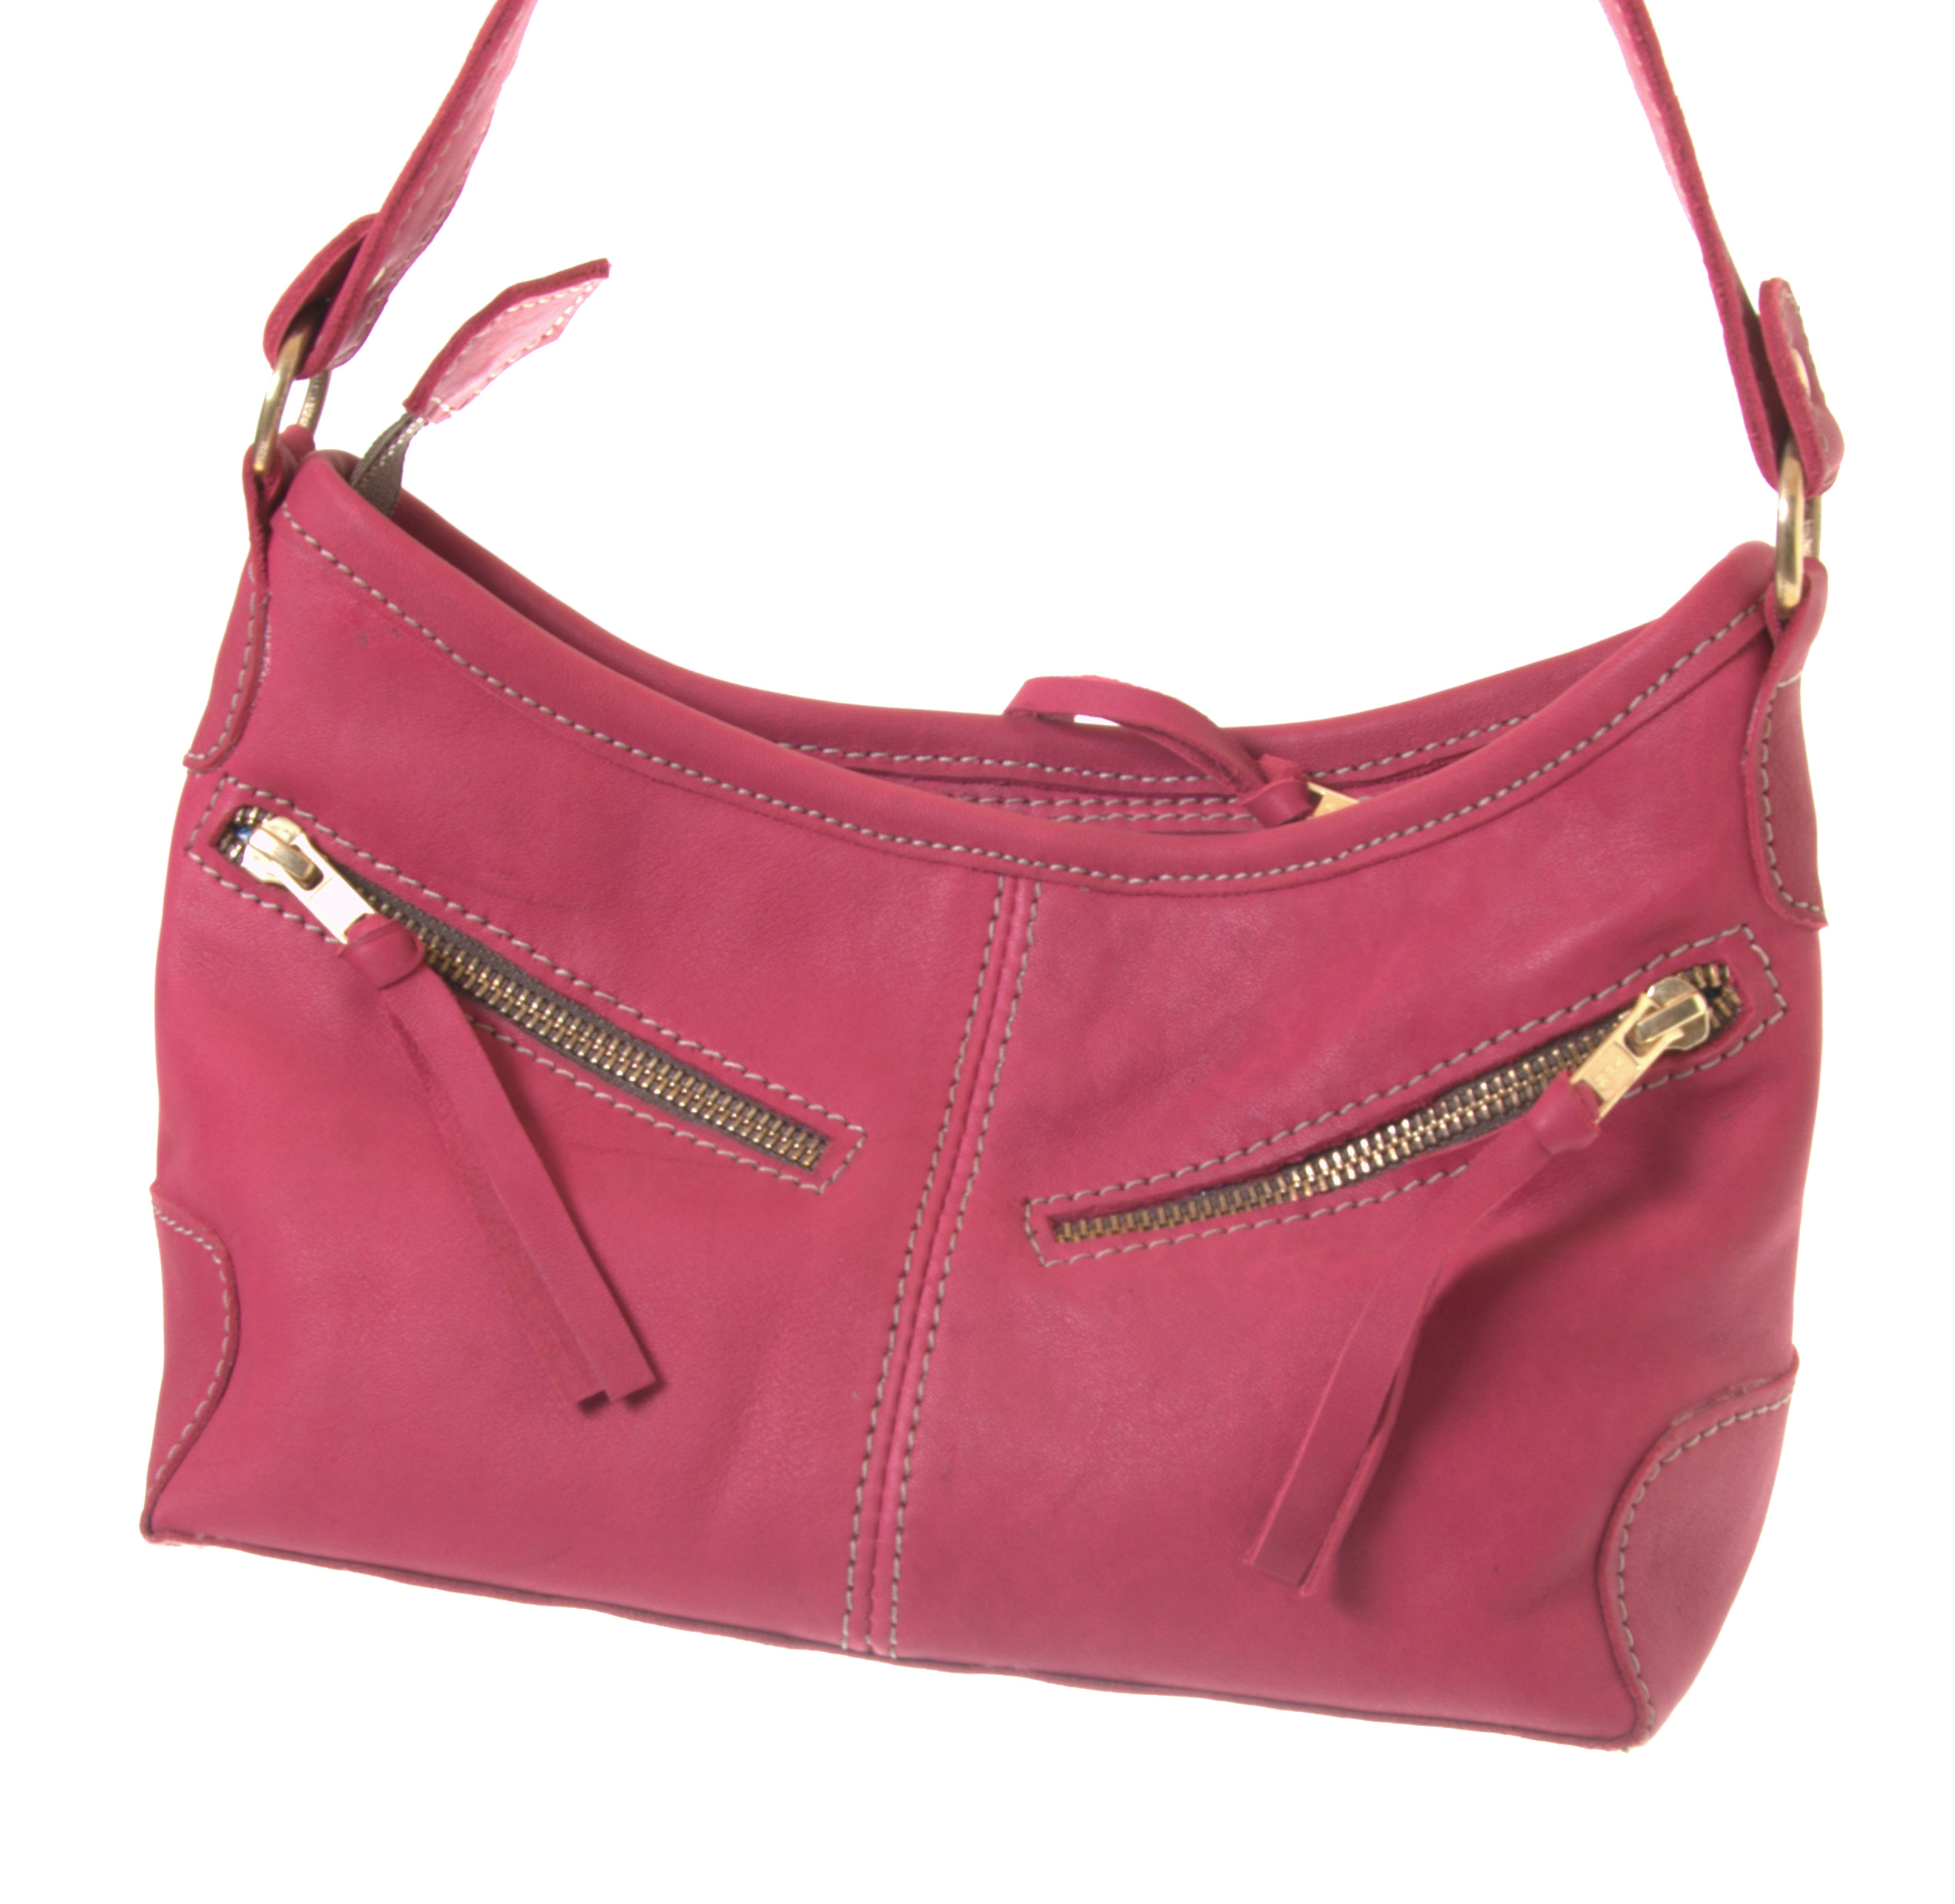 todd small fair trade leather bag from zambia